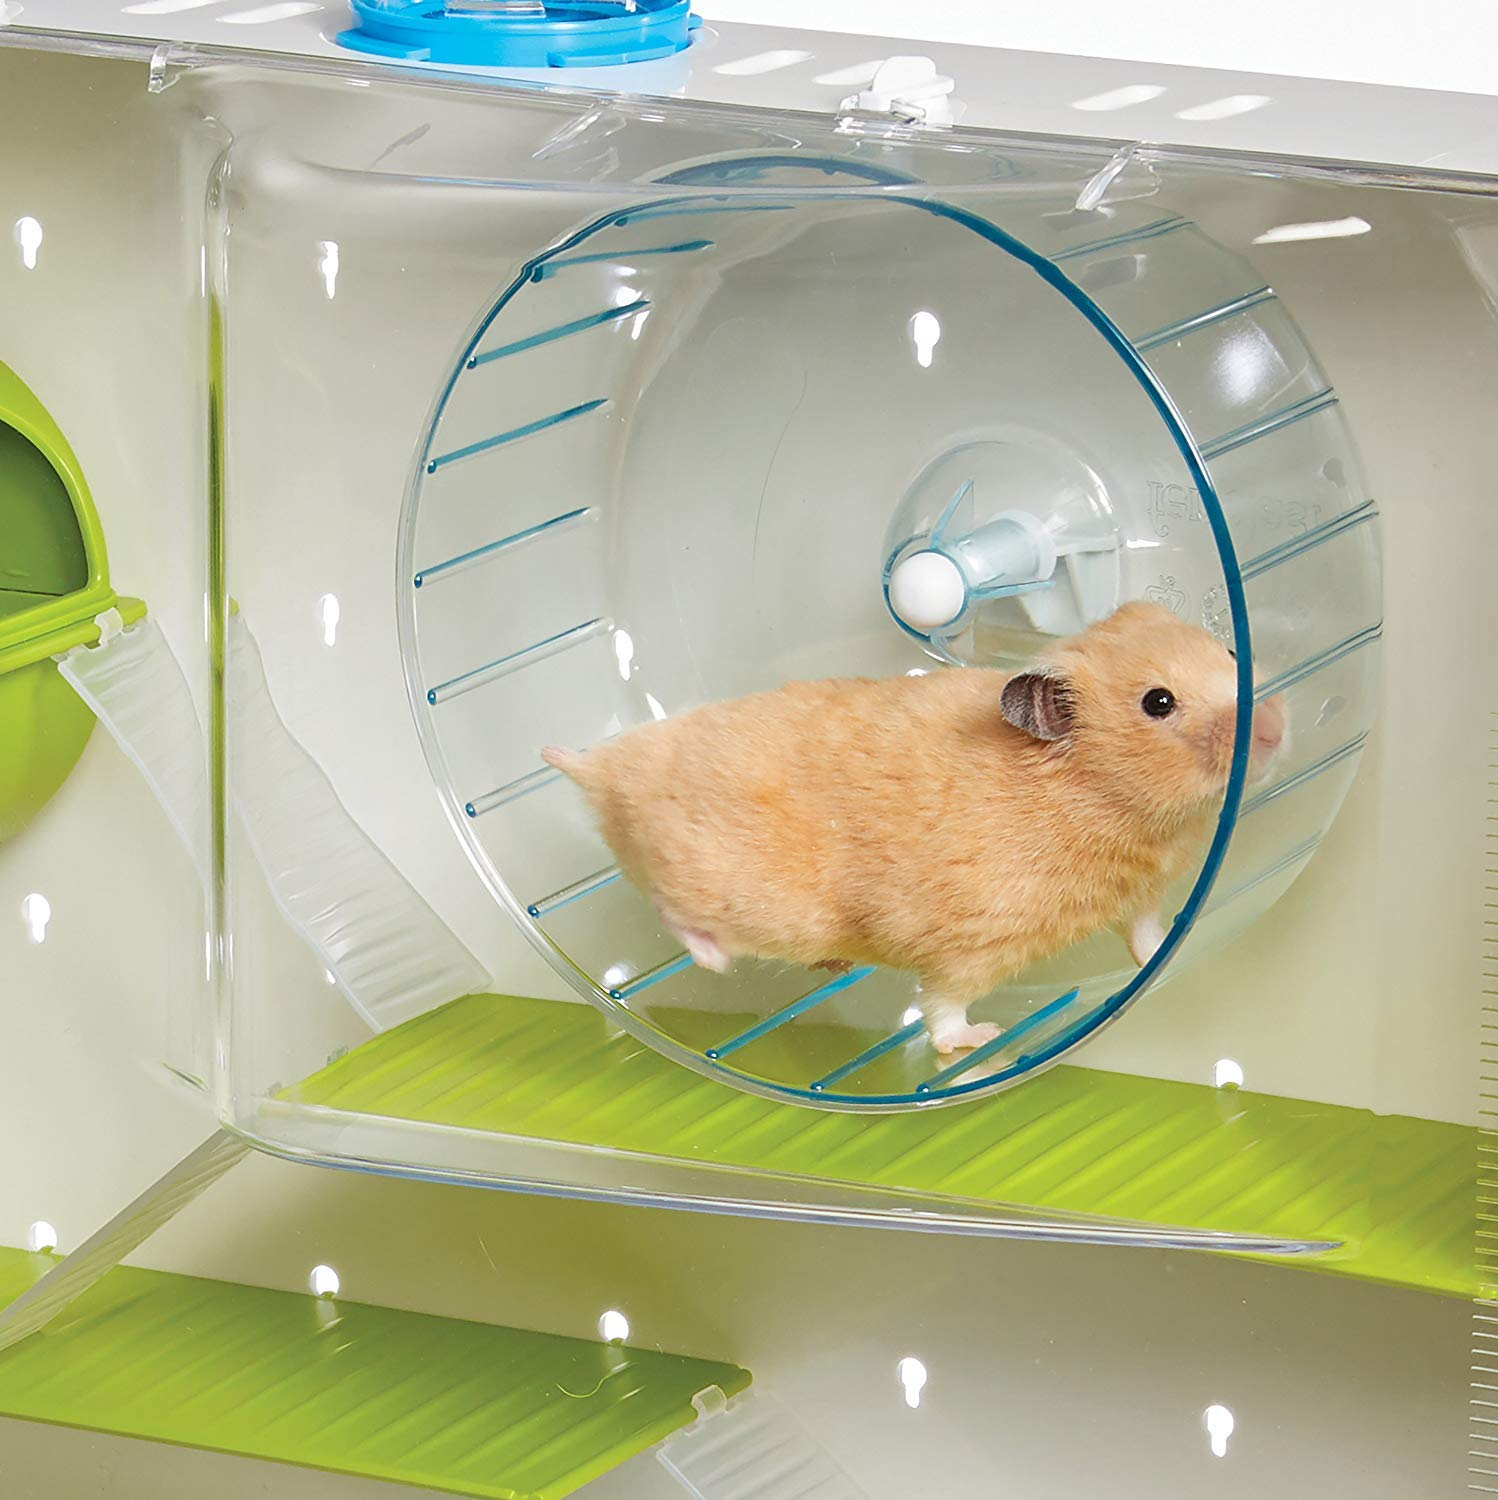 MidWest Homes for Pets Hamster Cage | Awesome Arcade Hamster Home | 18.11'' x 11.61'' x 21.26'' by MidWest Homes for Pets (Image #5)